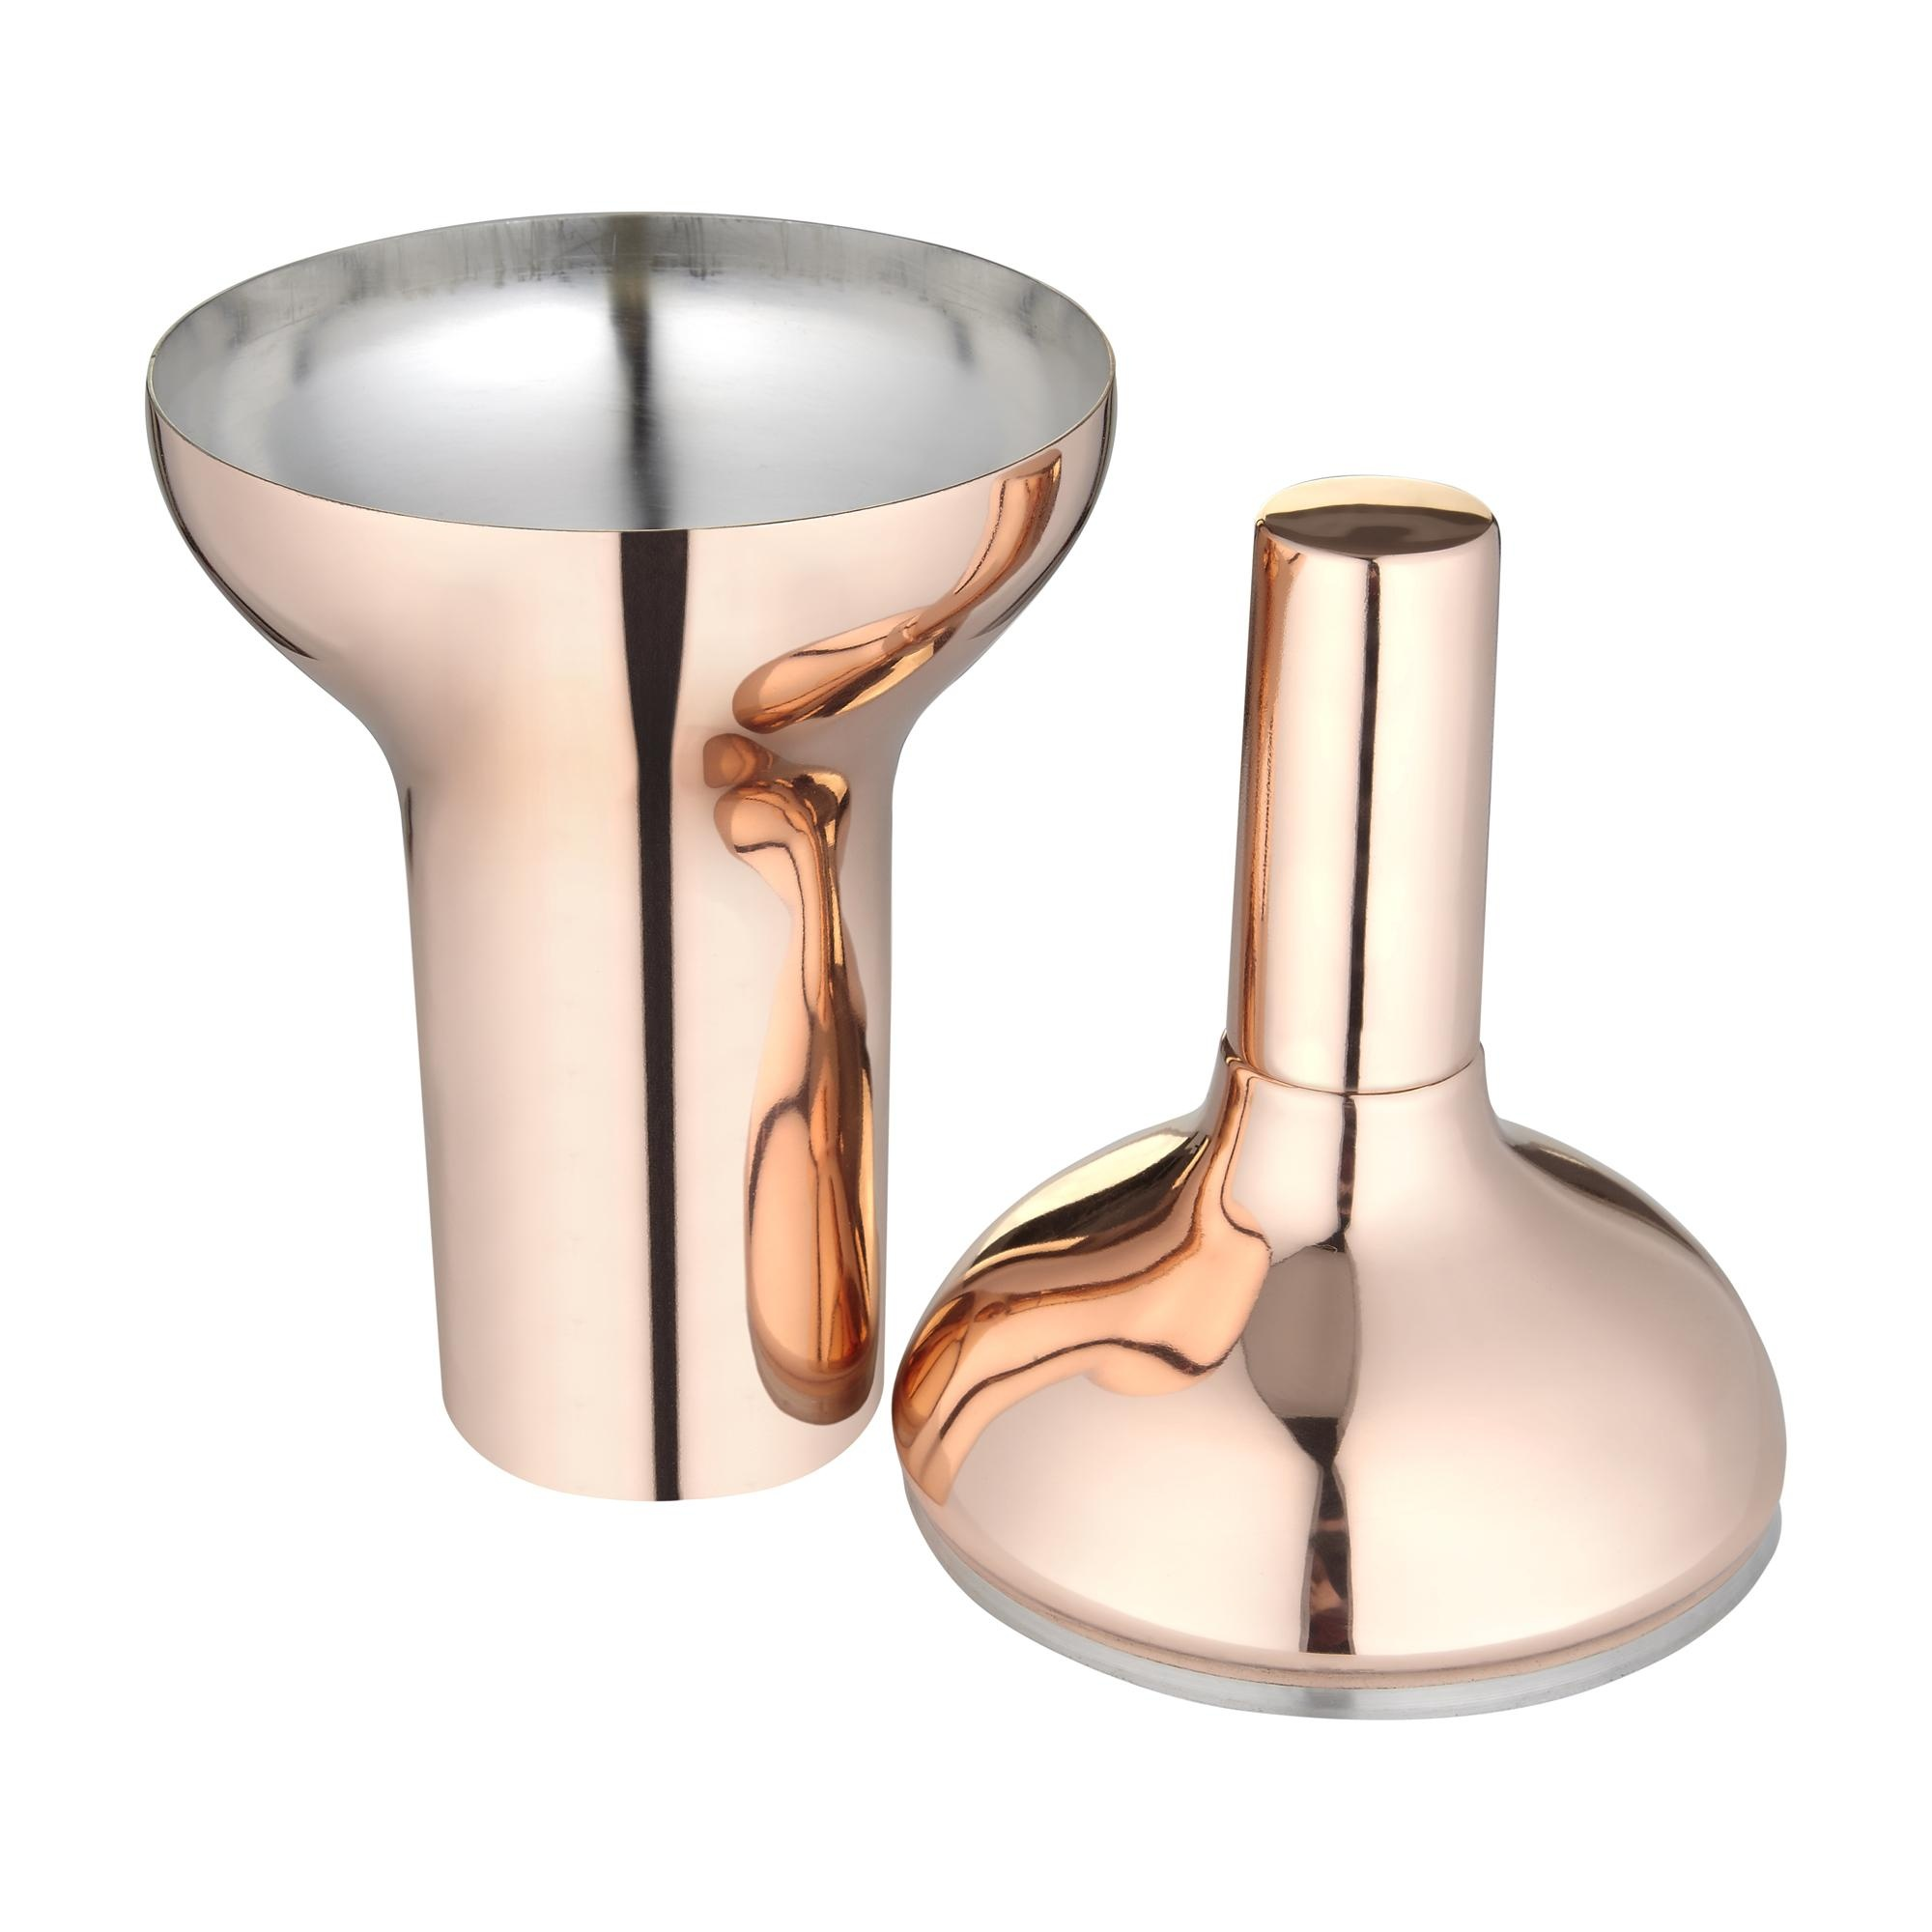 Tom Dixon - Plum Cocktail Shaker - copper/glossy/H 29cm/Ã 12cm